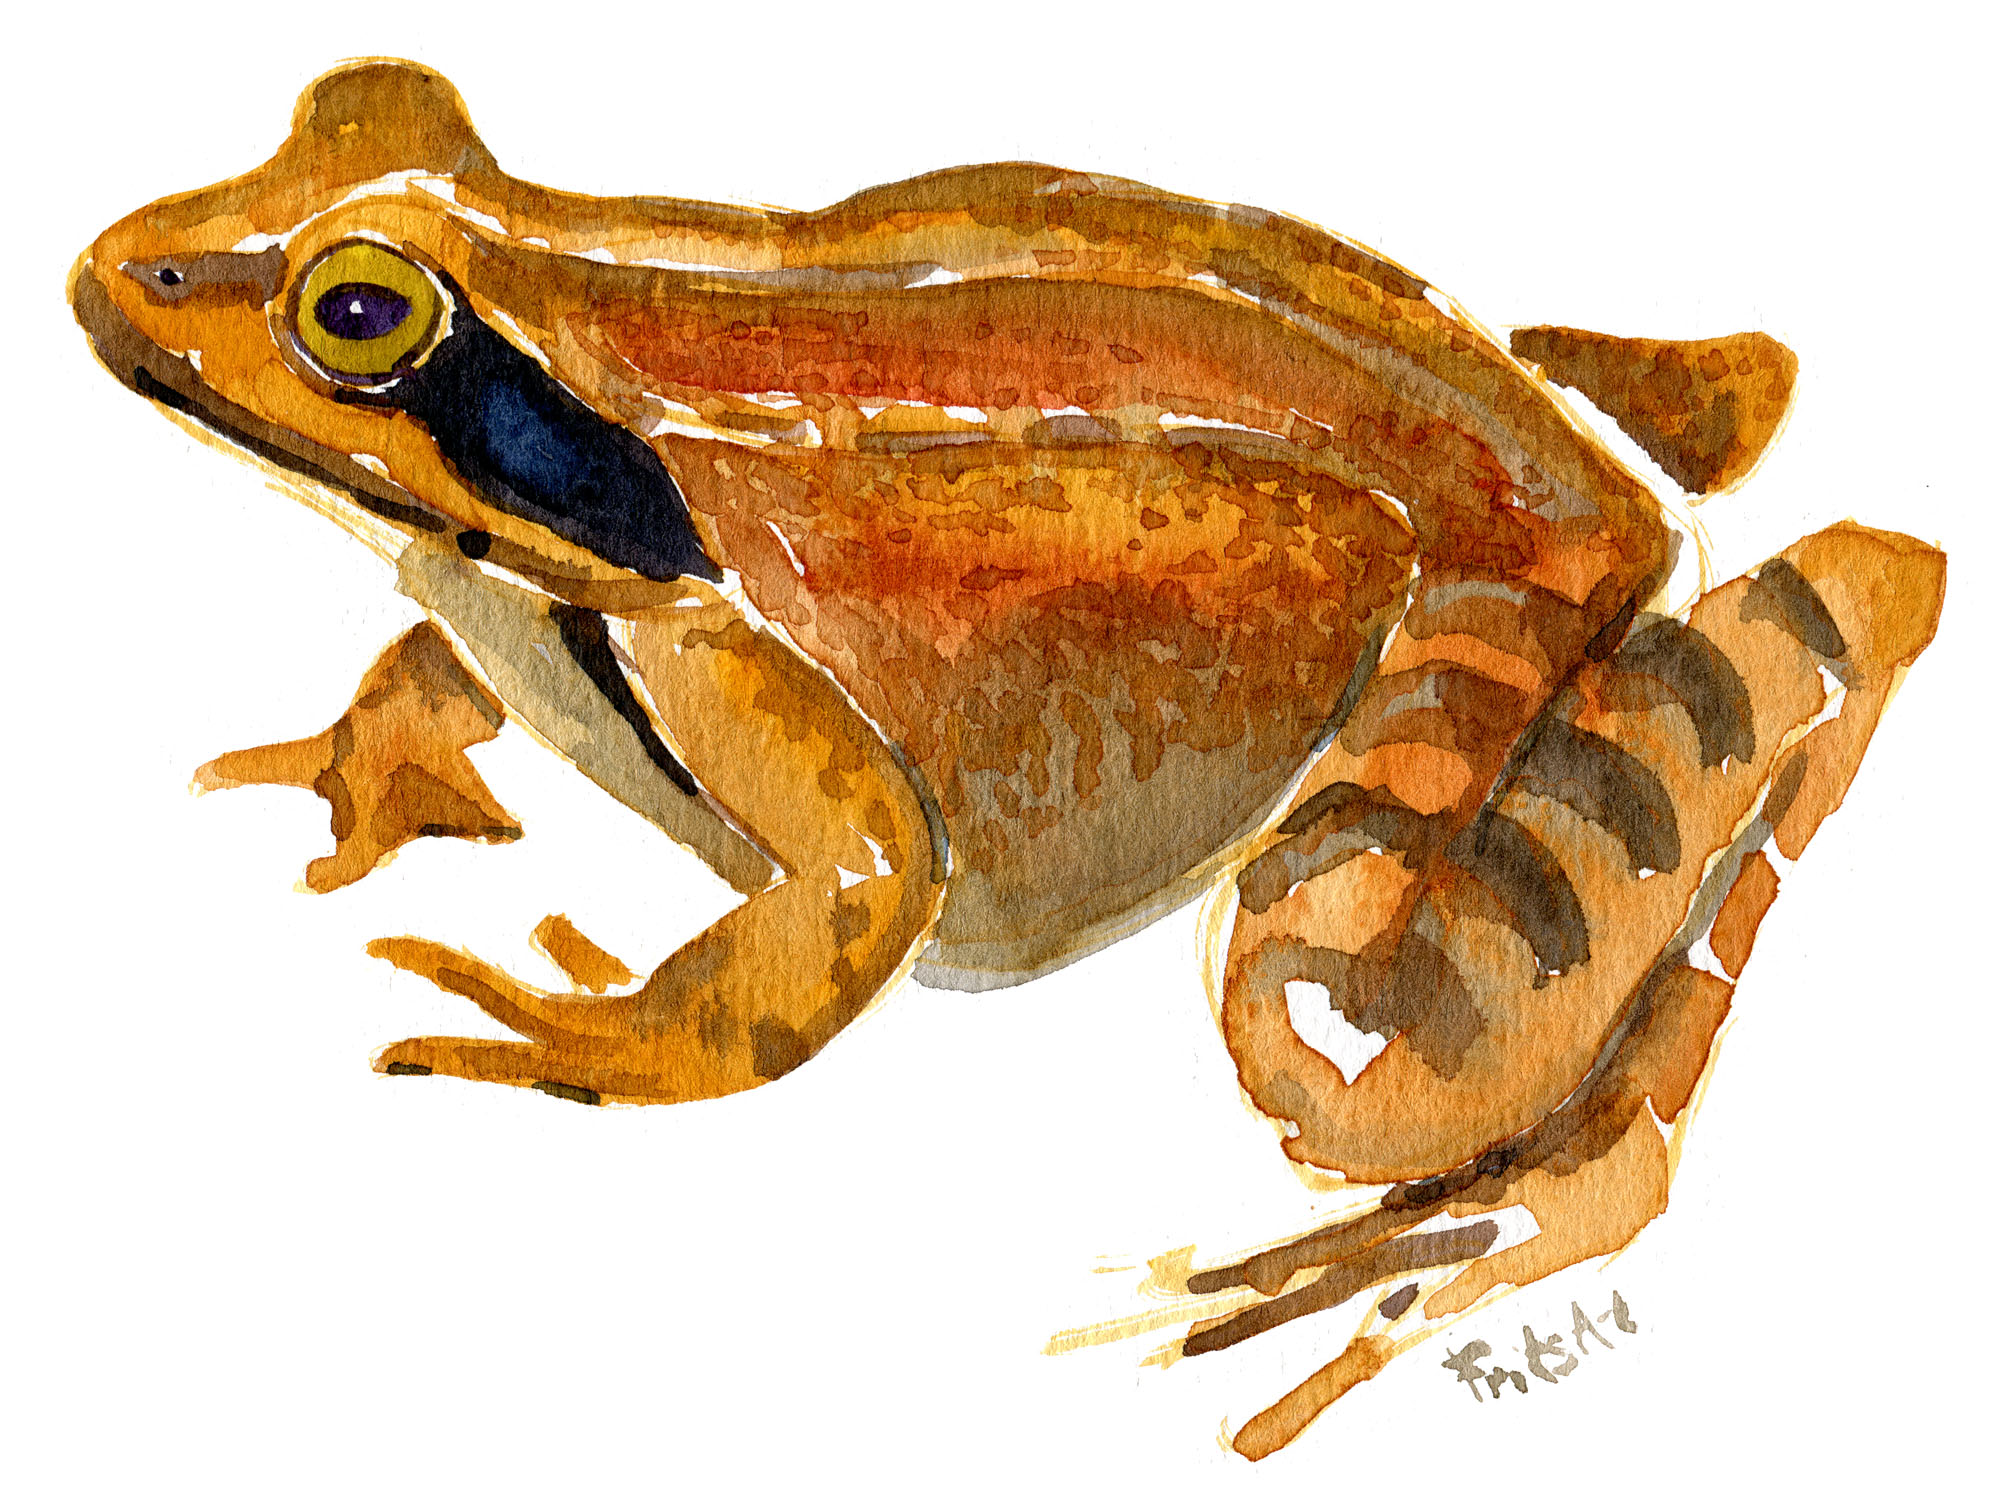 agile-frog-1-watercolor-by-frits-ahlefeldt